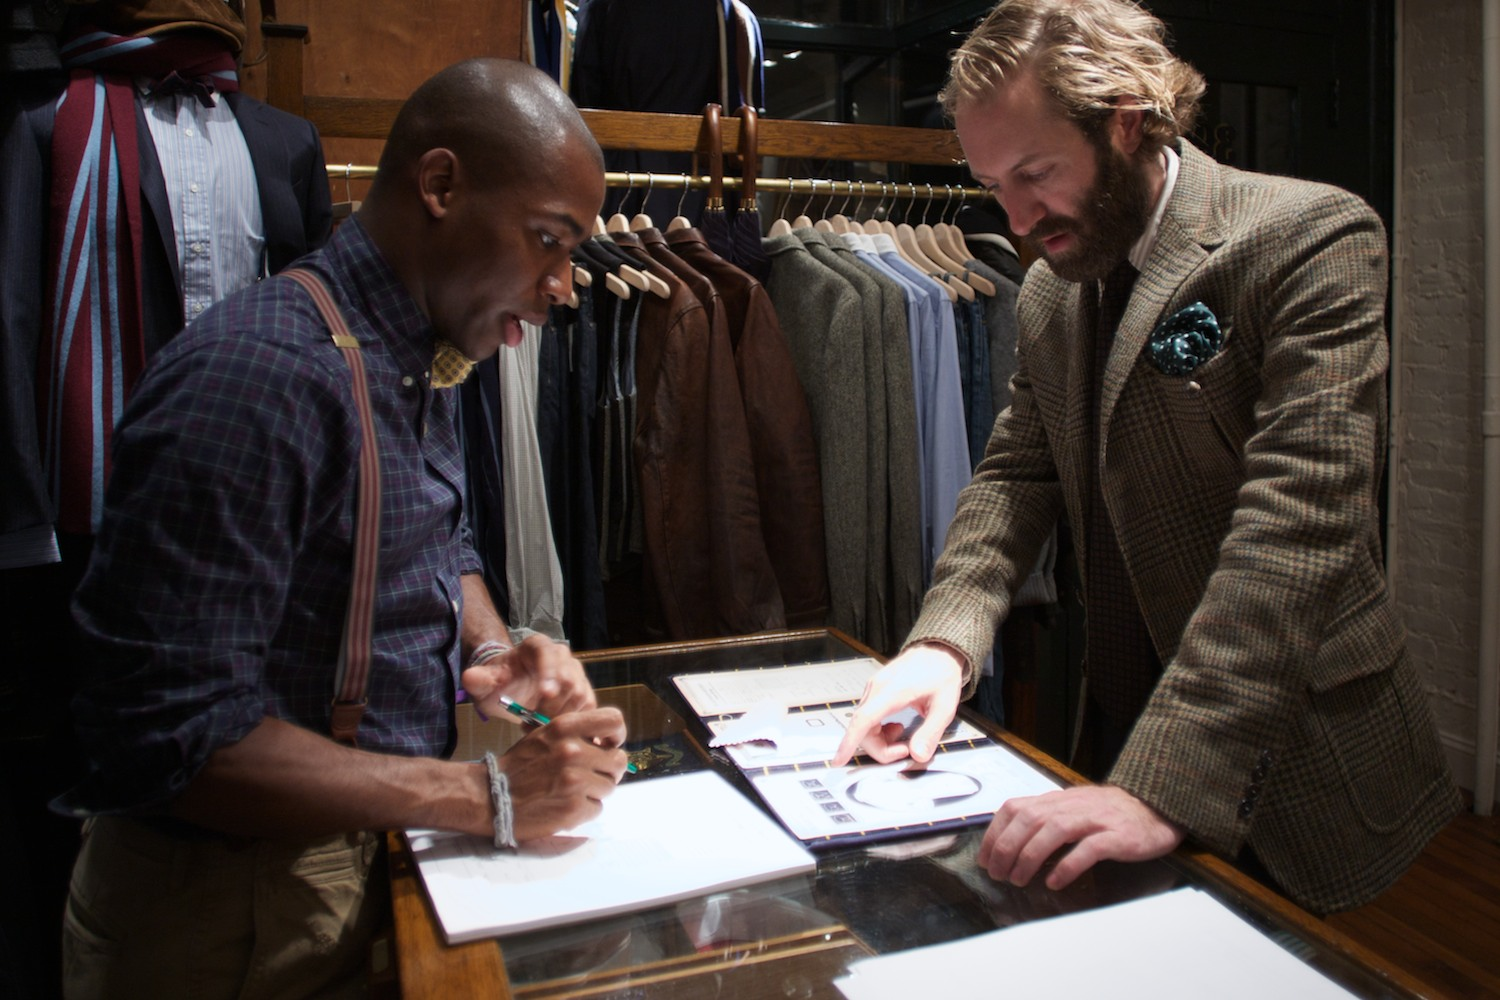 Linton helping David Coggins with a made-to-order shirt.